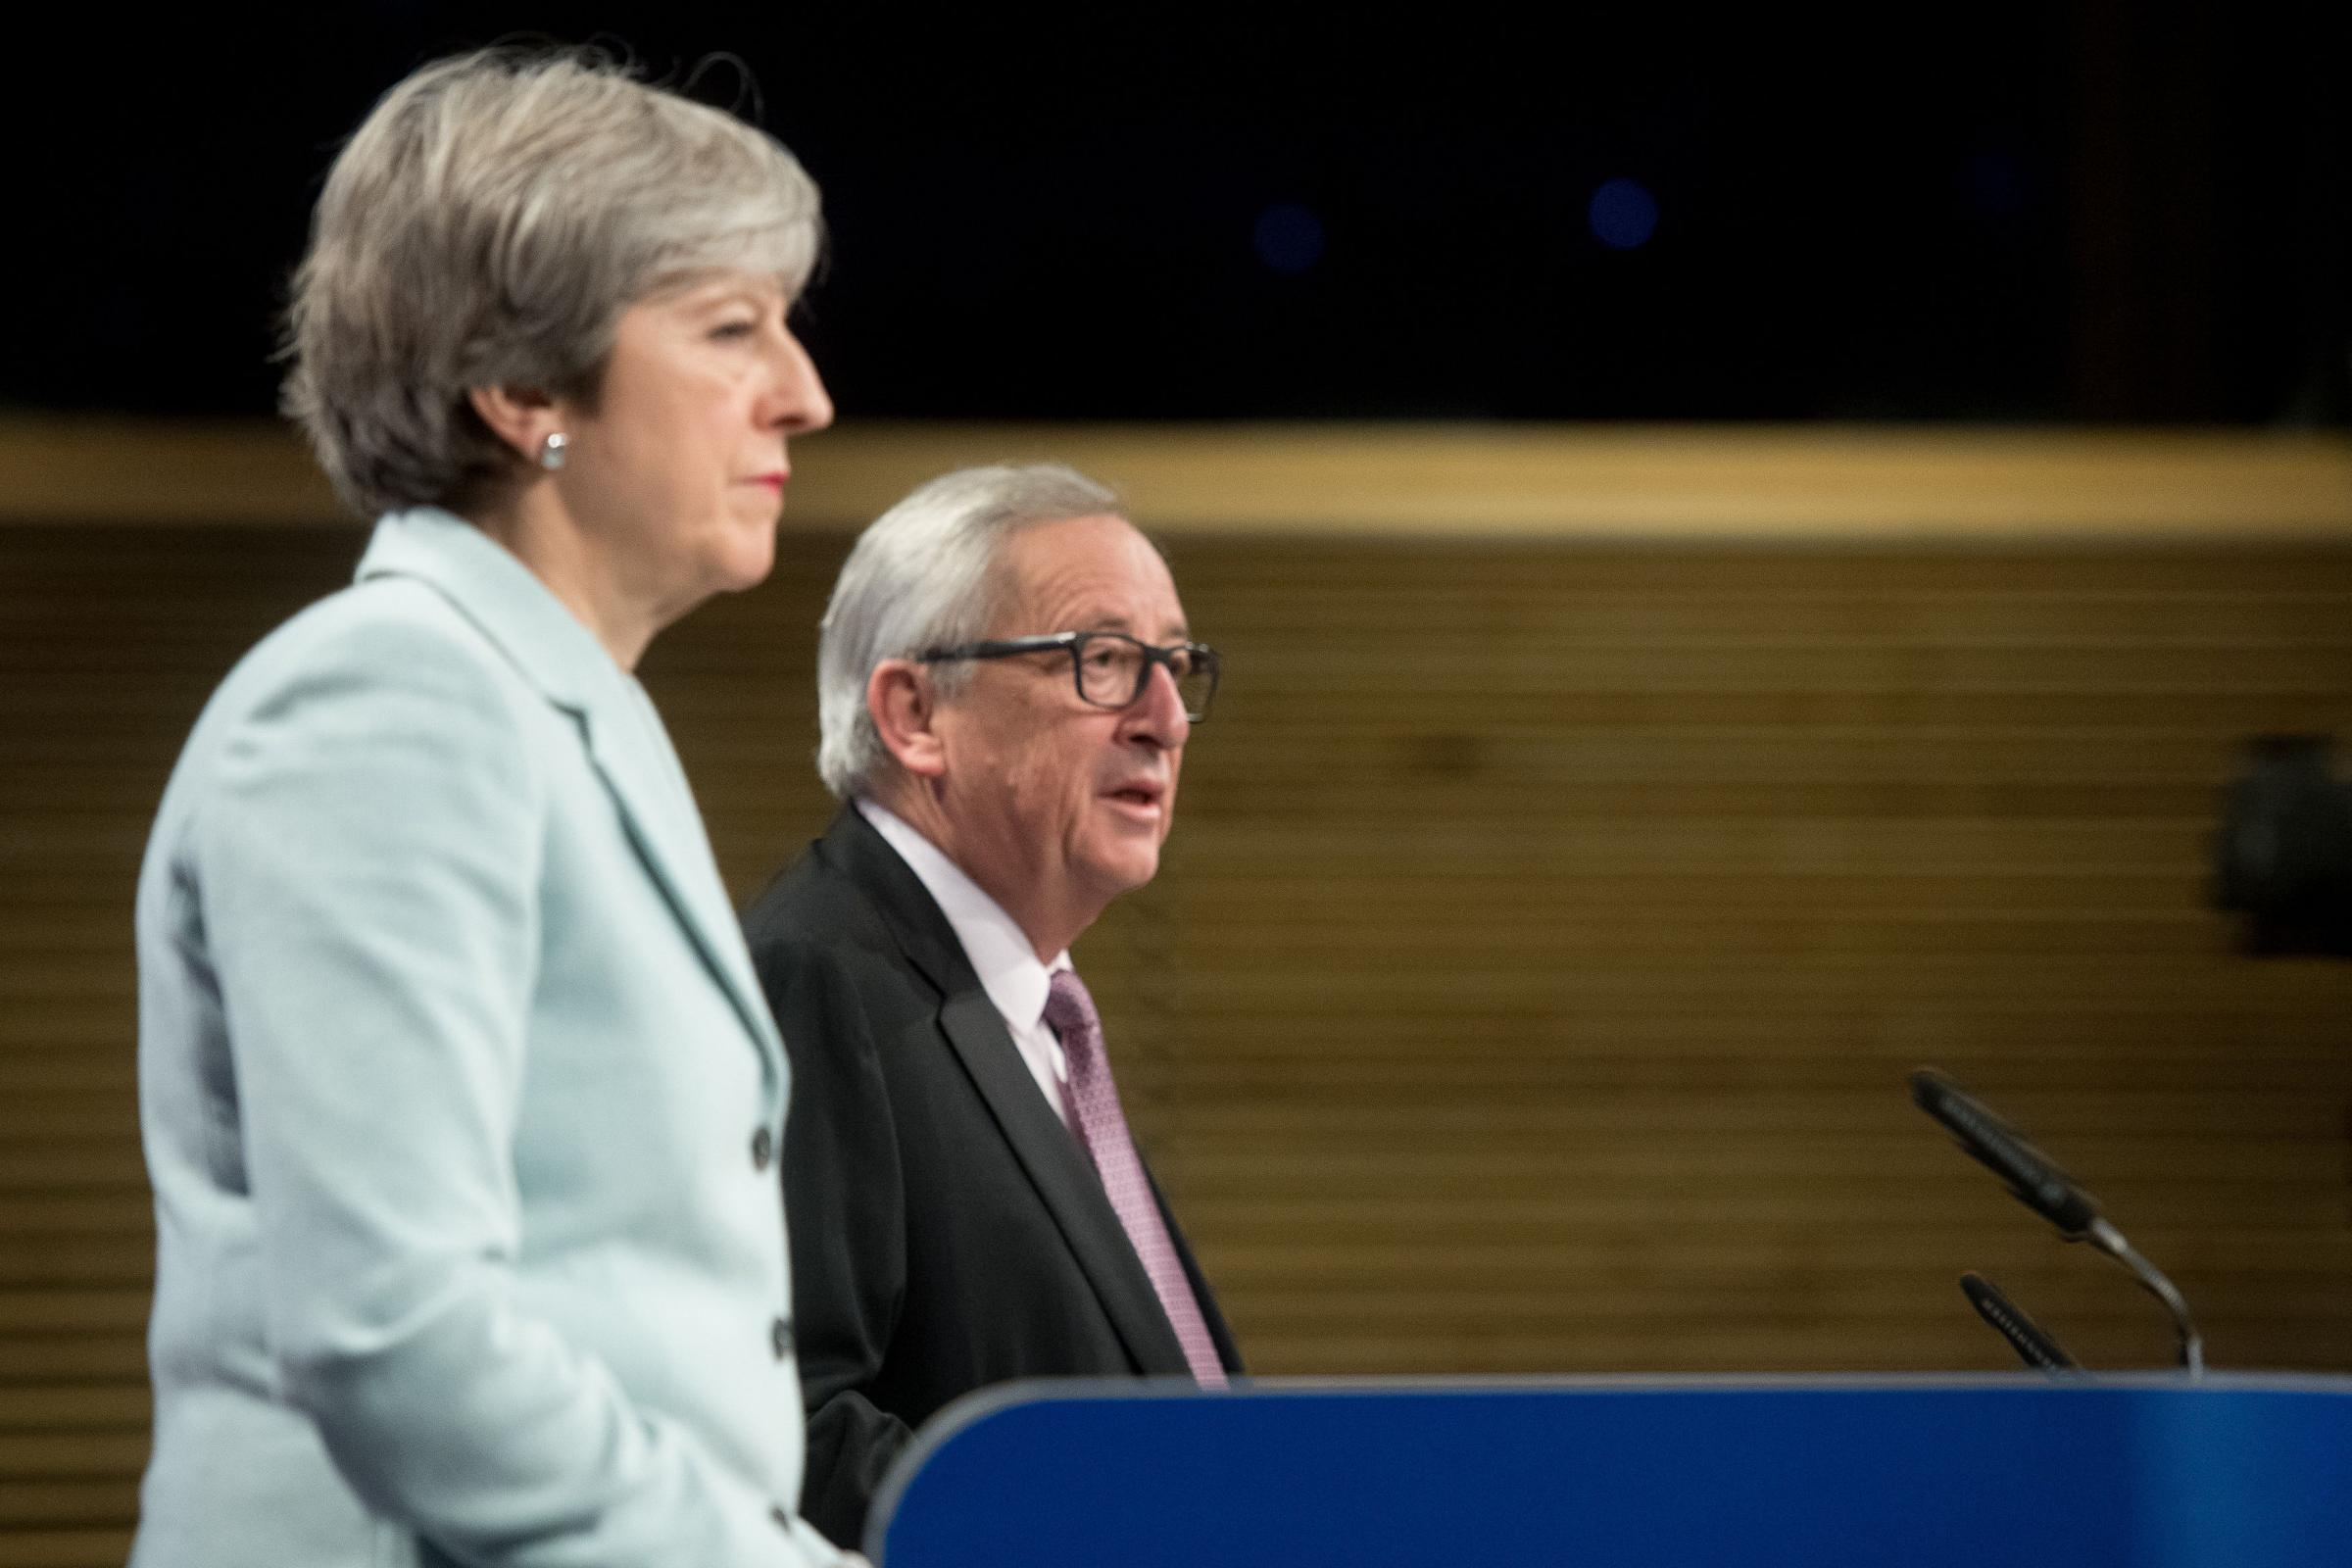 Theresa May is meeting European Commission president Jean-Claude Juncker